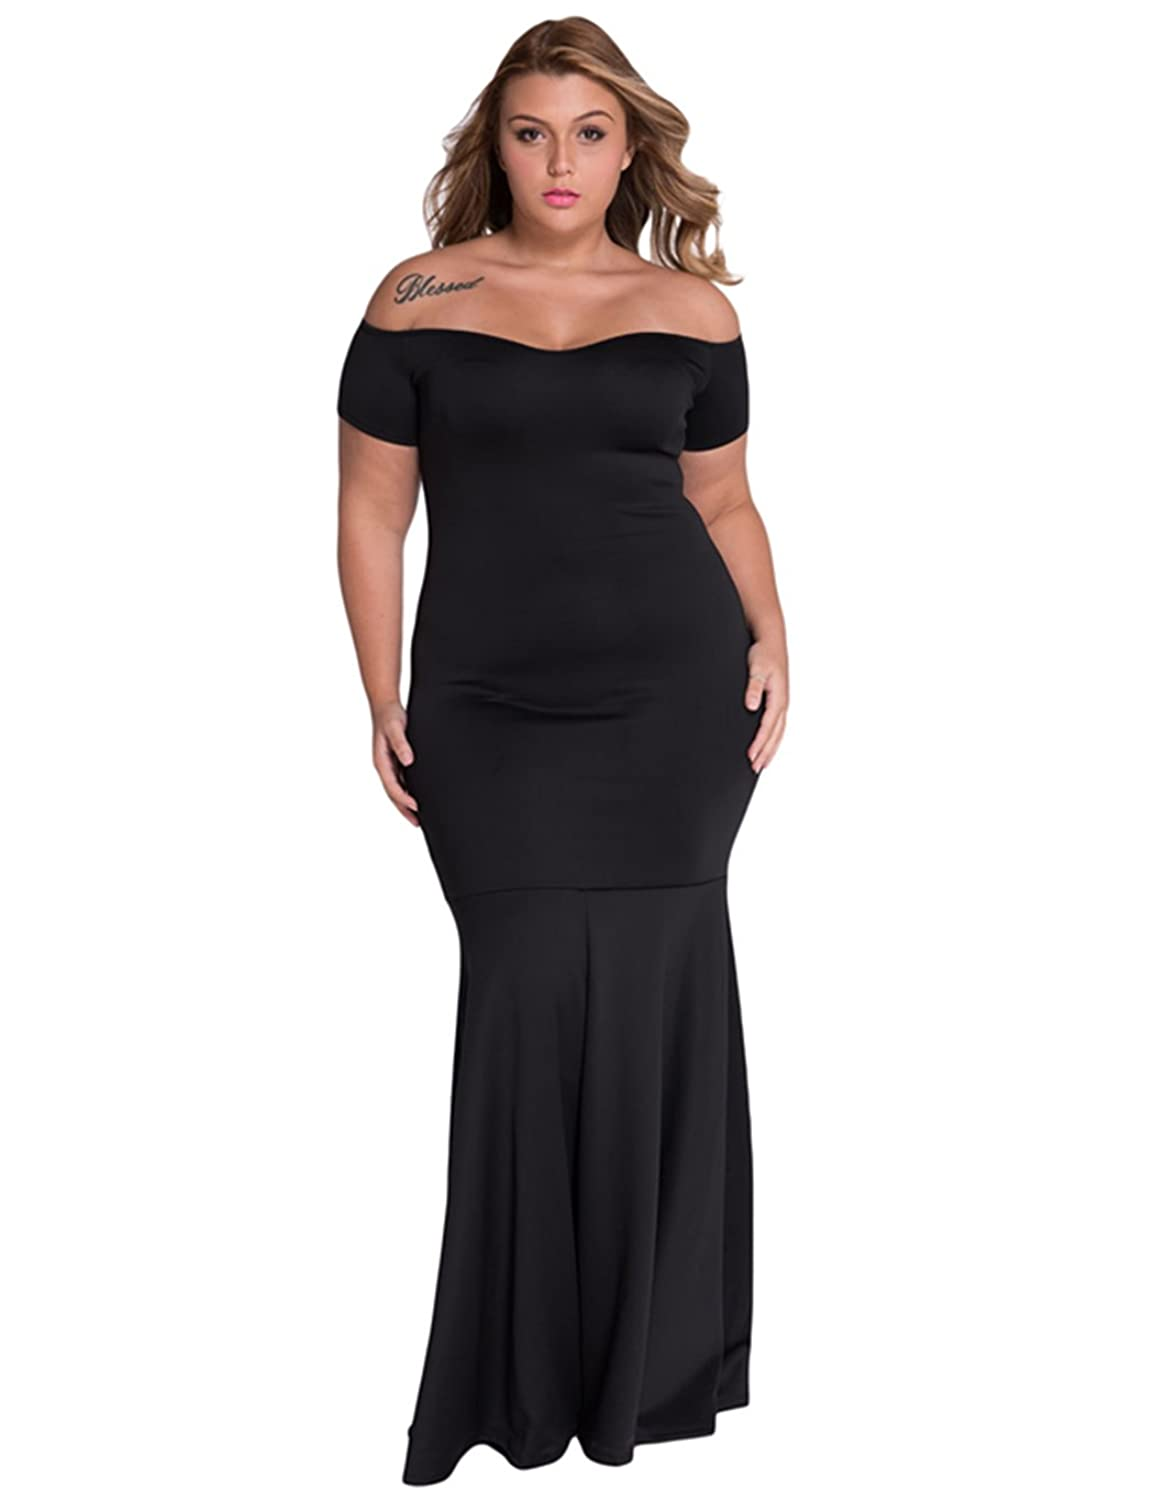 Over the Shoulder Plus Size Dresses